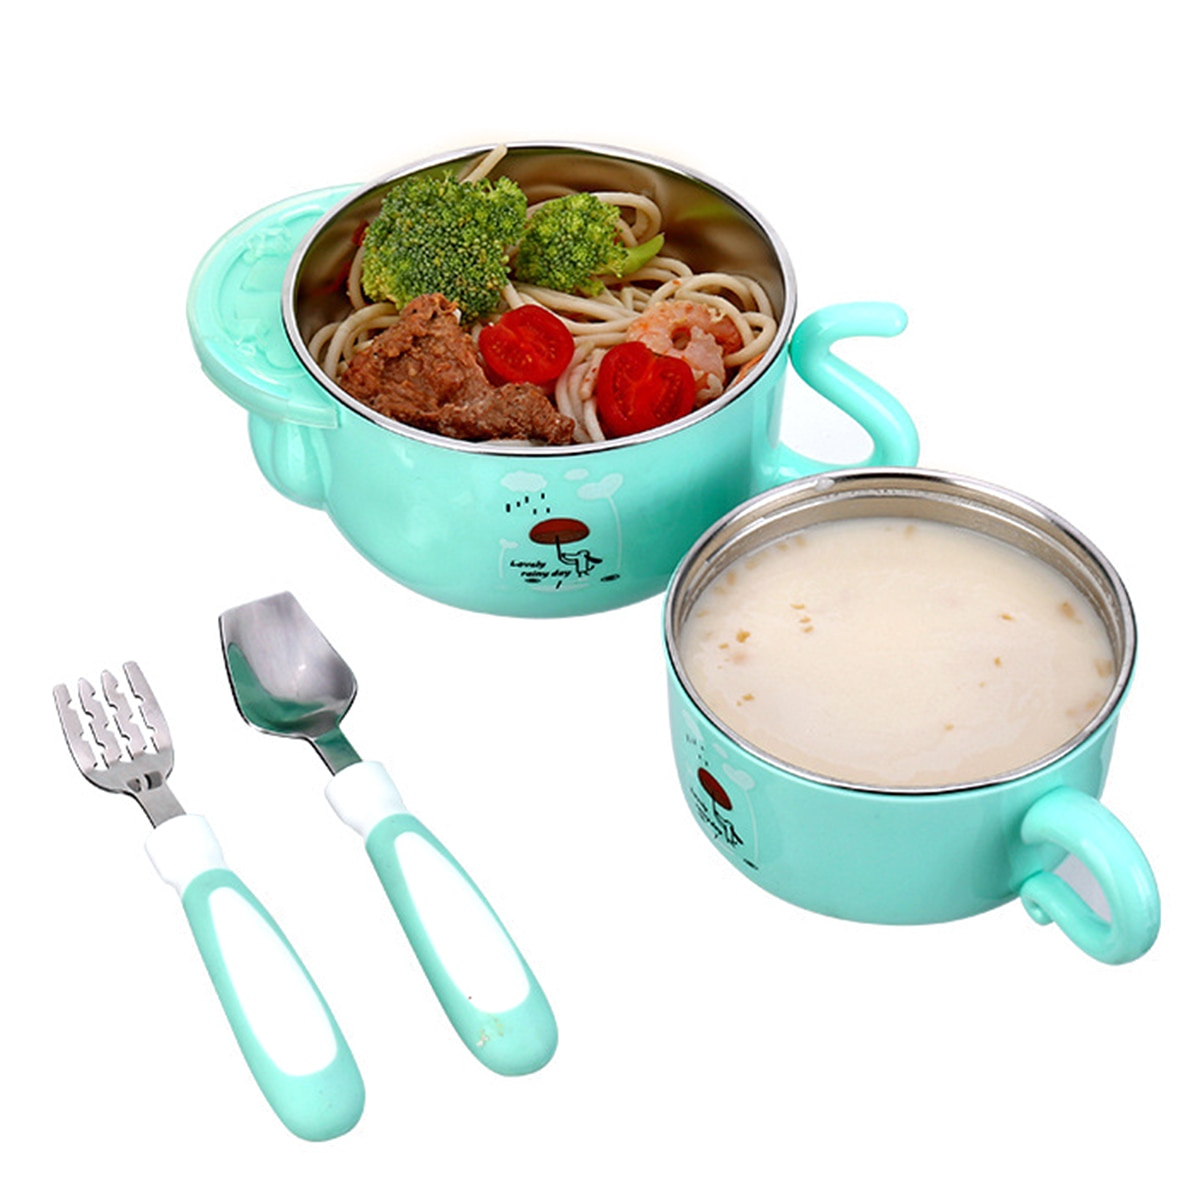 Baby Care 5pcs/sets baby newborn food Dinnerware Set baby stainless steel bowl Spoon cup fork Tableware set kids Food Container